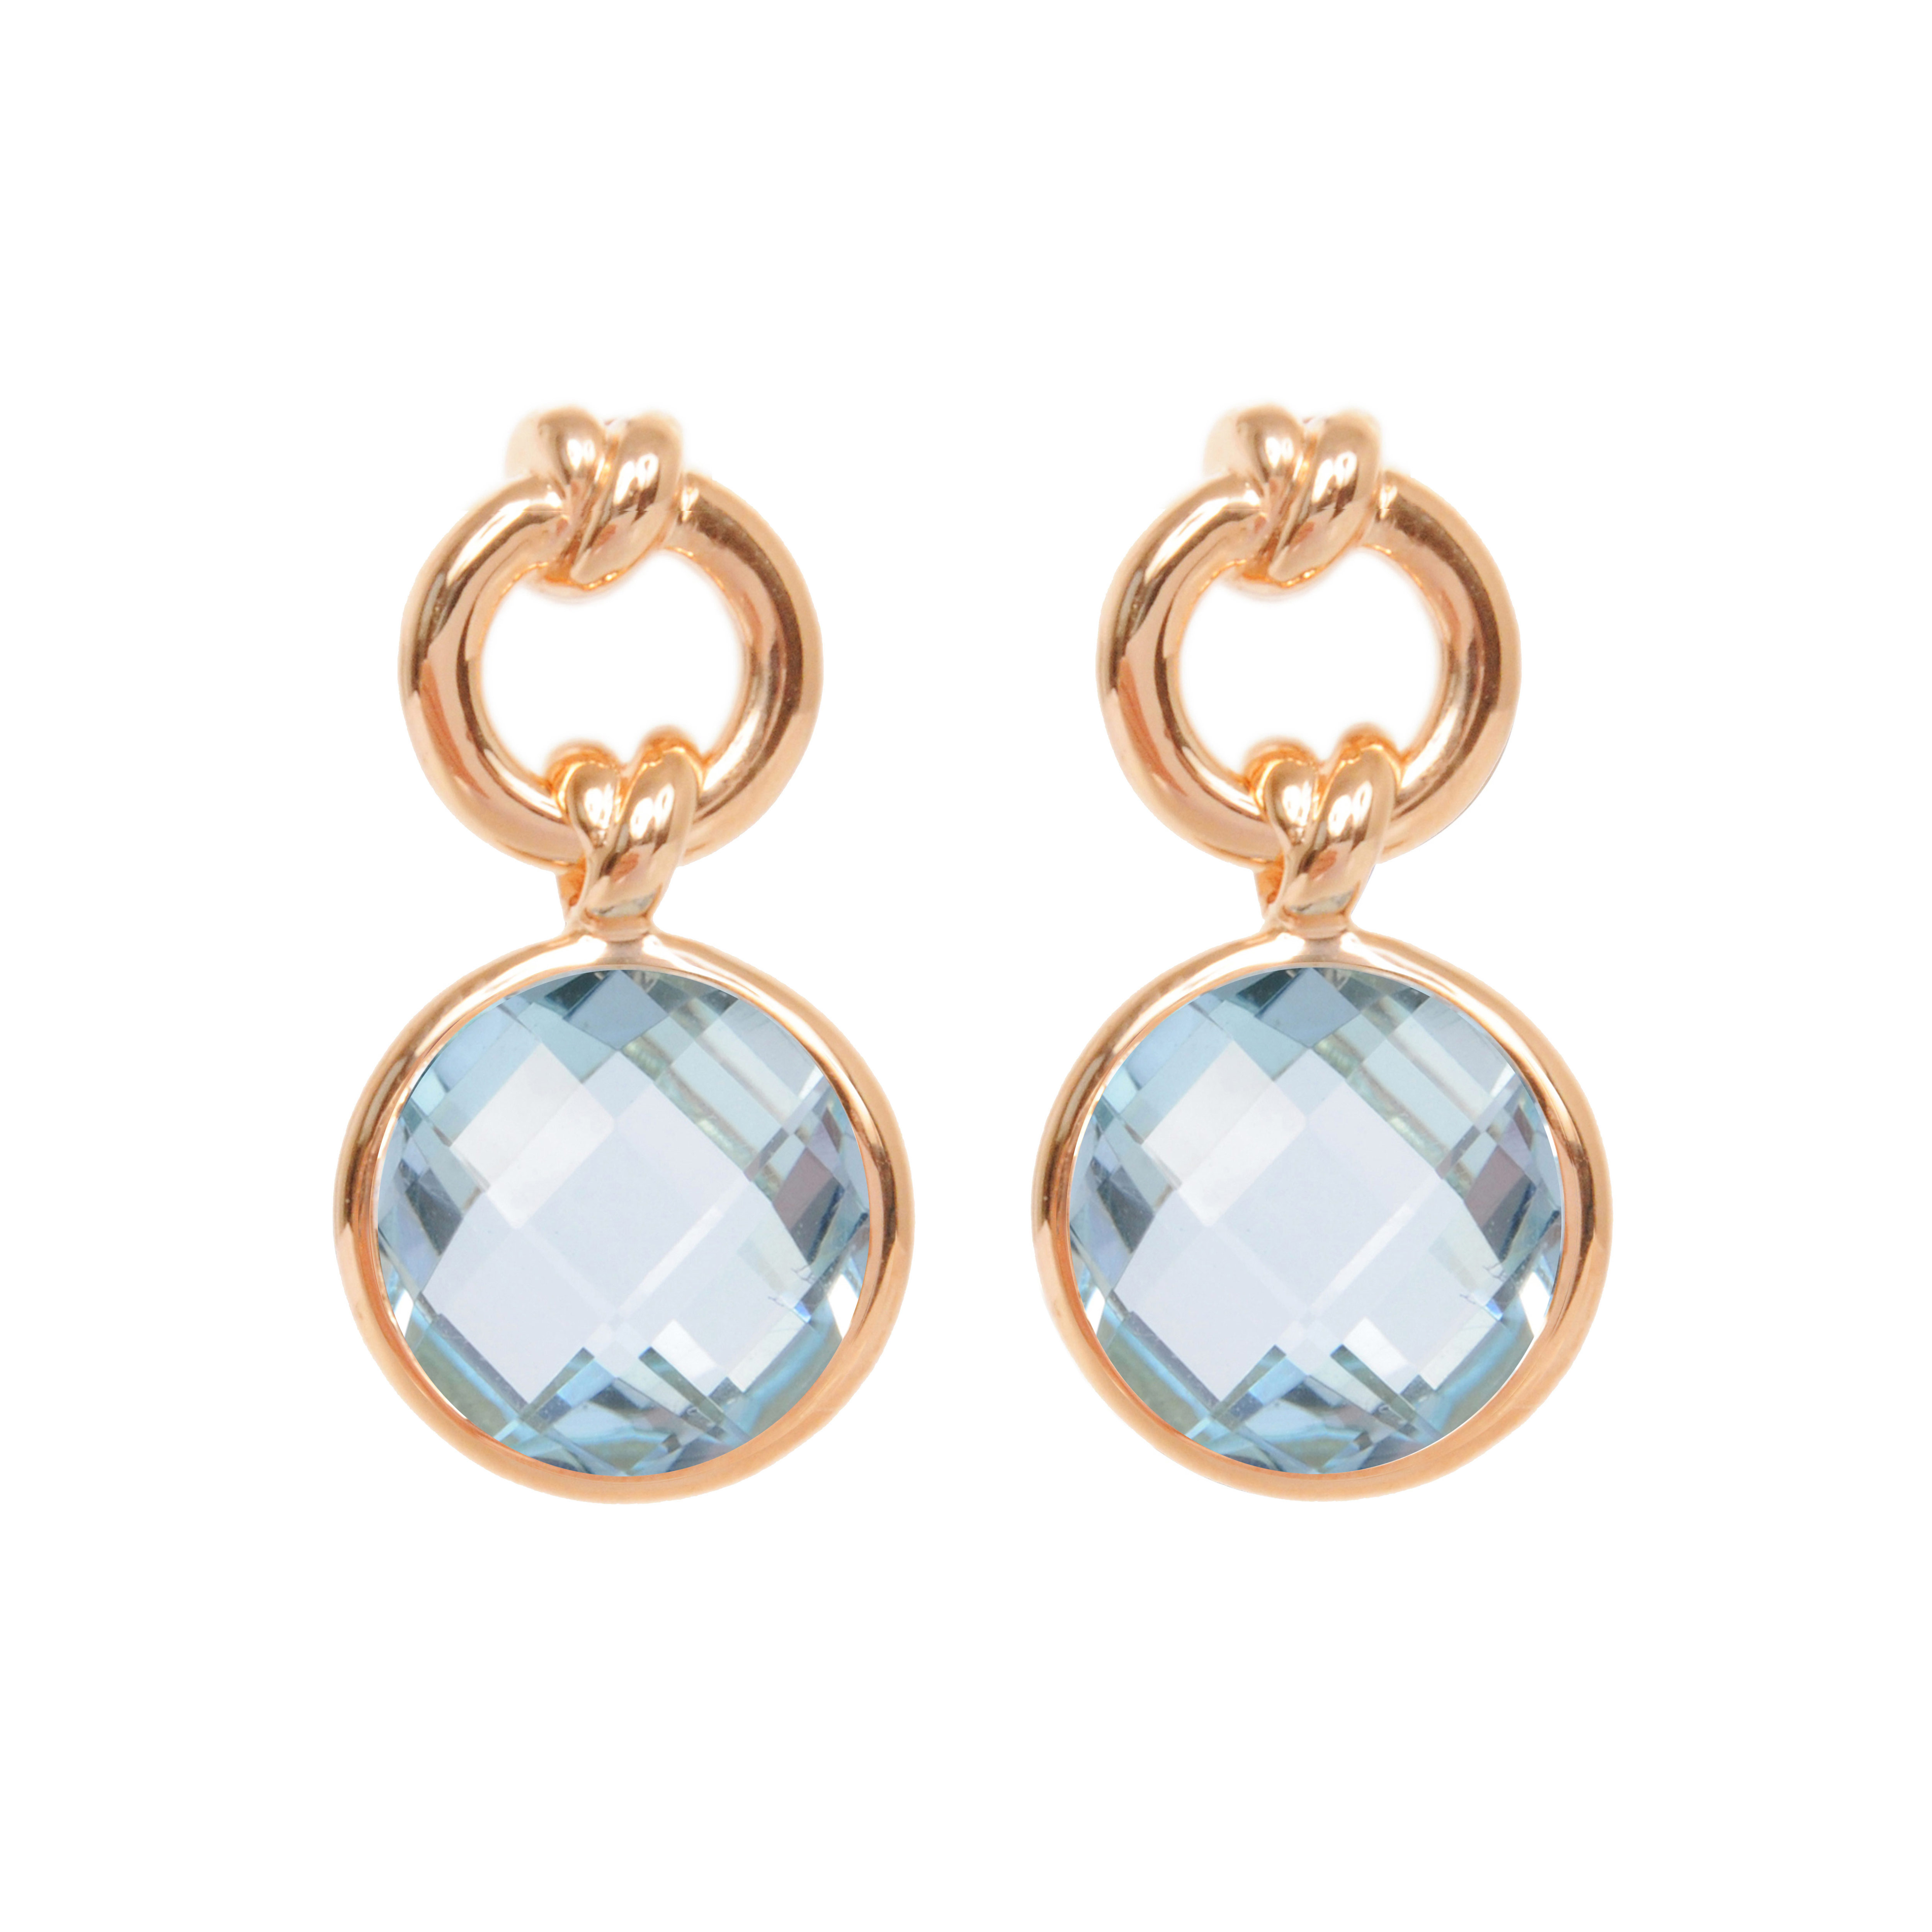 Davina Combe | Rose Gold Knot Drop Earrings with Blue Topaz